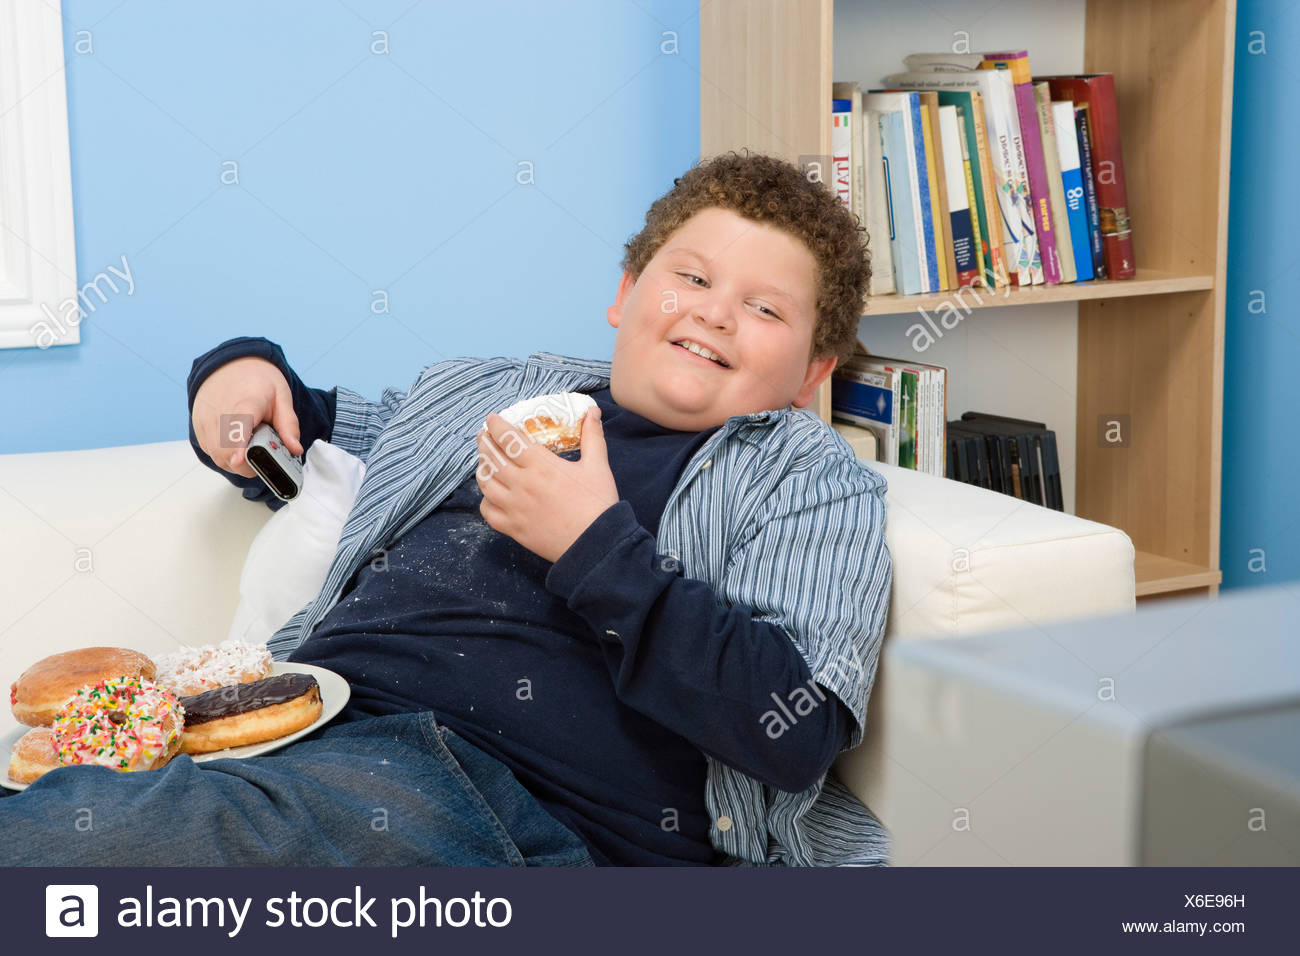 Boy Eating Donuts - Stock Image